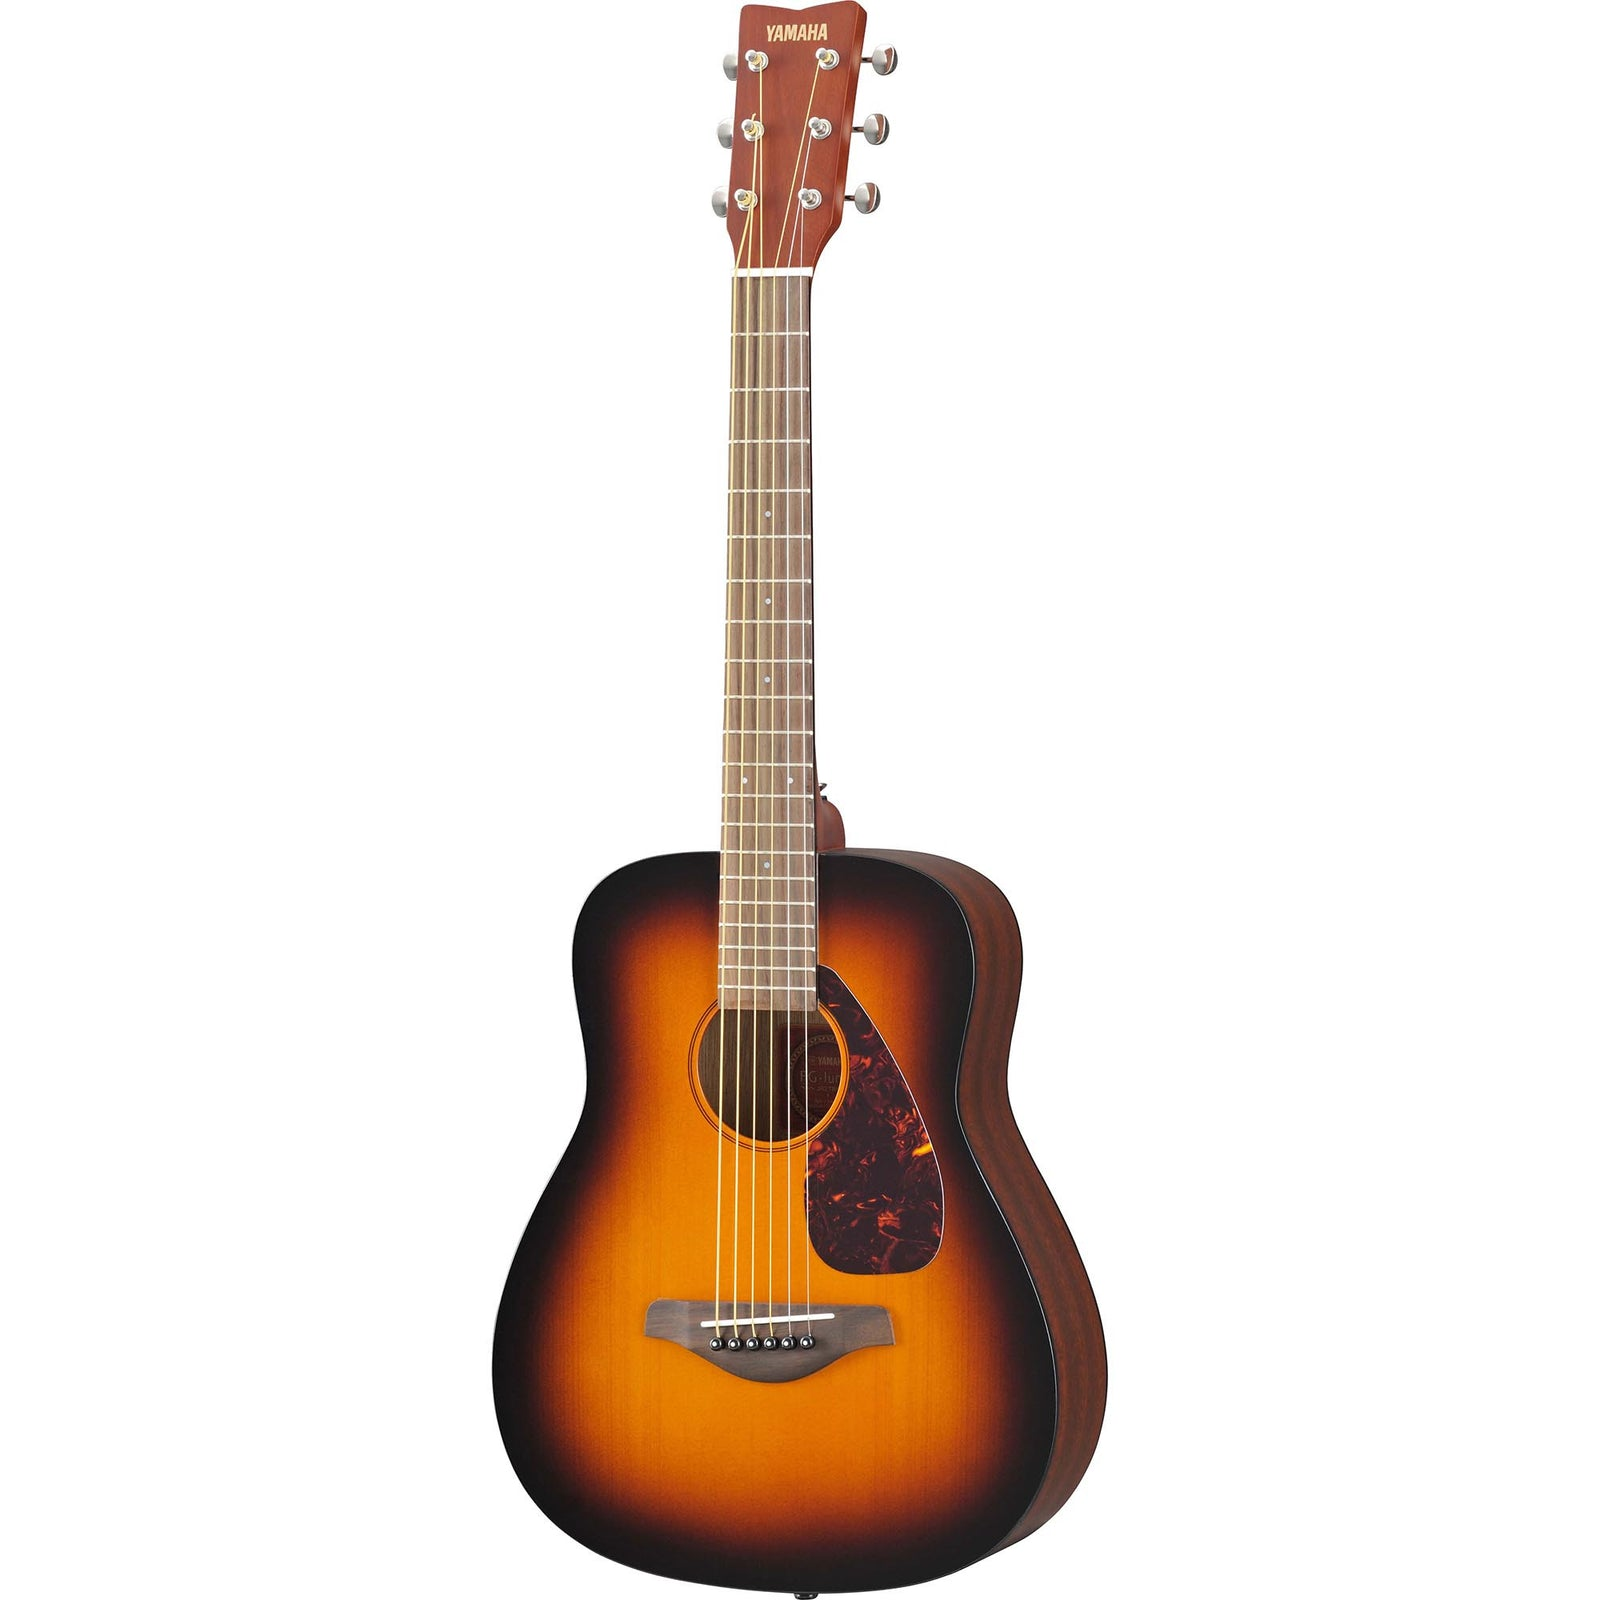 Yamaha Jr2 3/4 Scale Acoustic W/ Solid Top, Sunburst